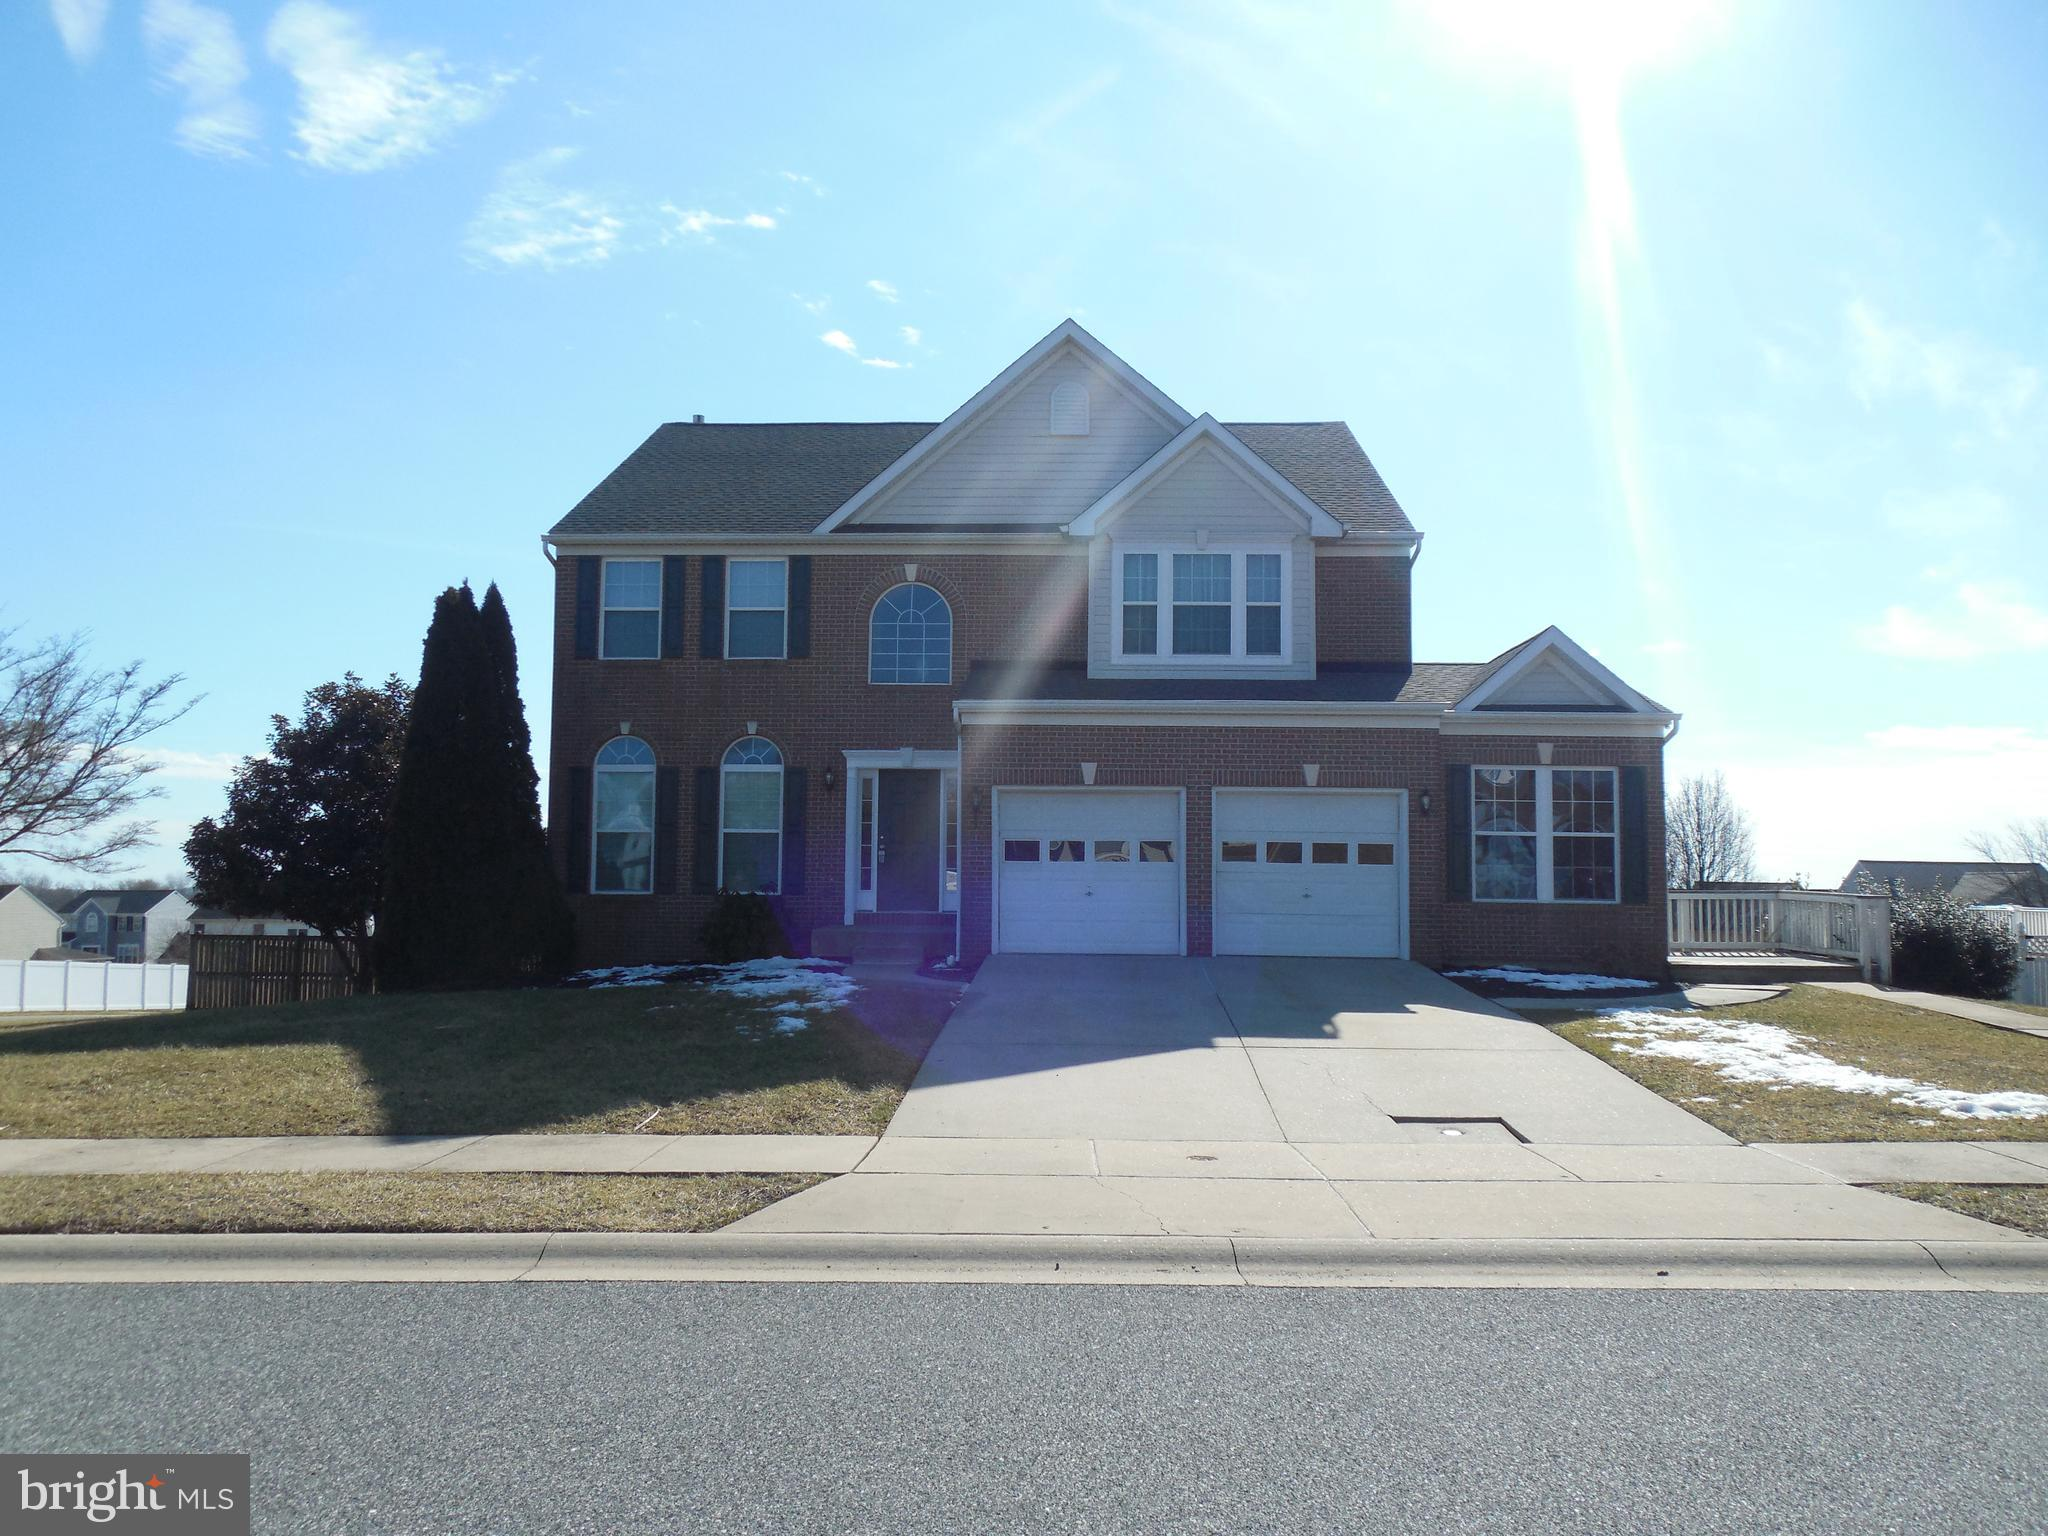 400 W PINEY POINT DRIVE, PERRYVILLE, MD 21903